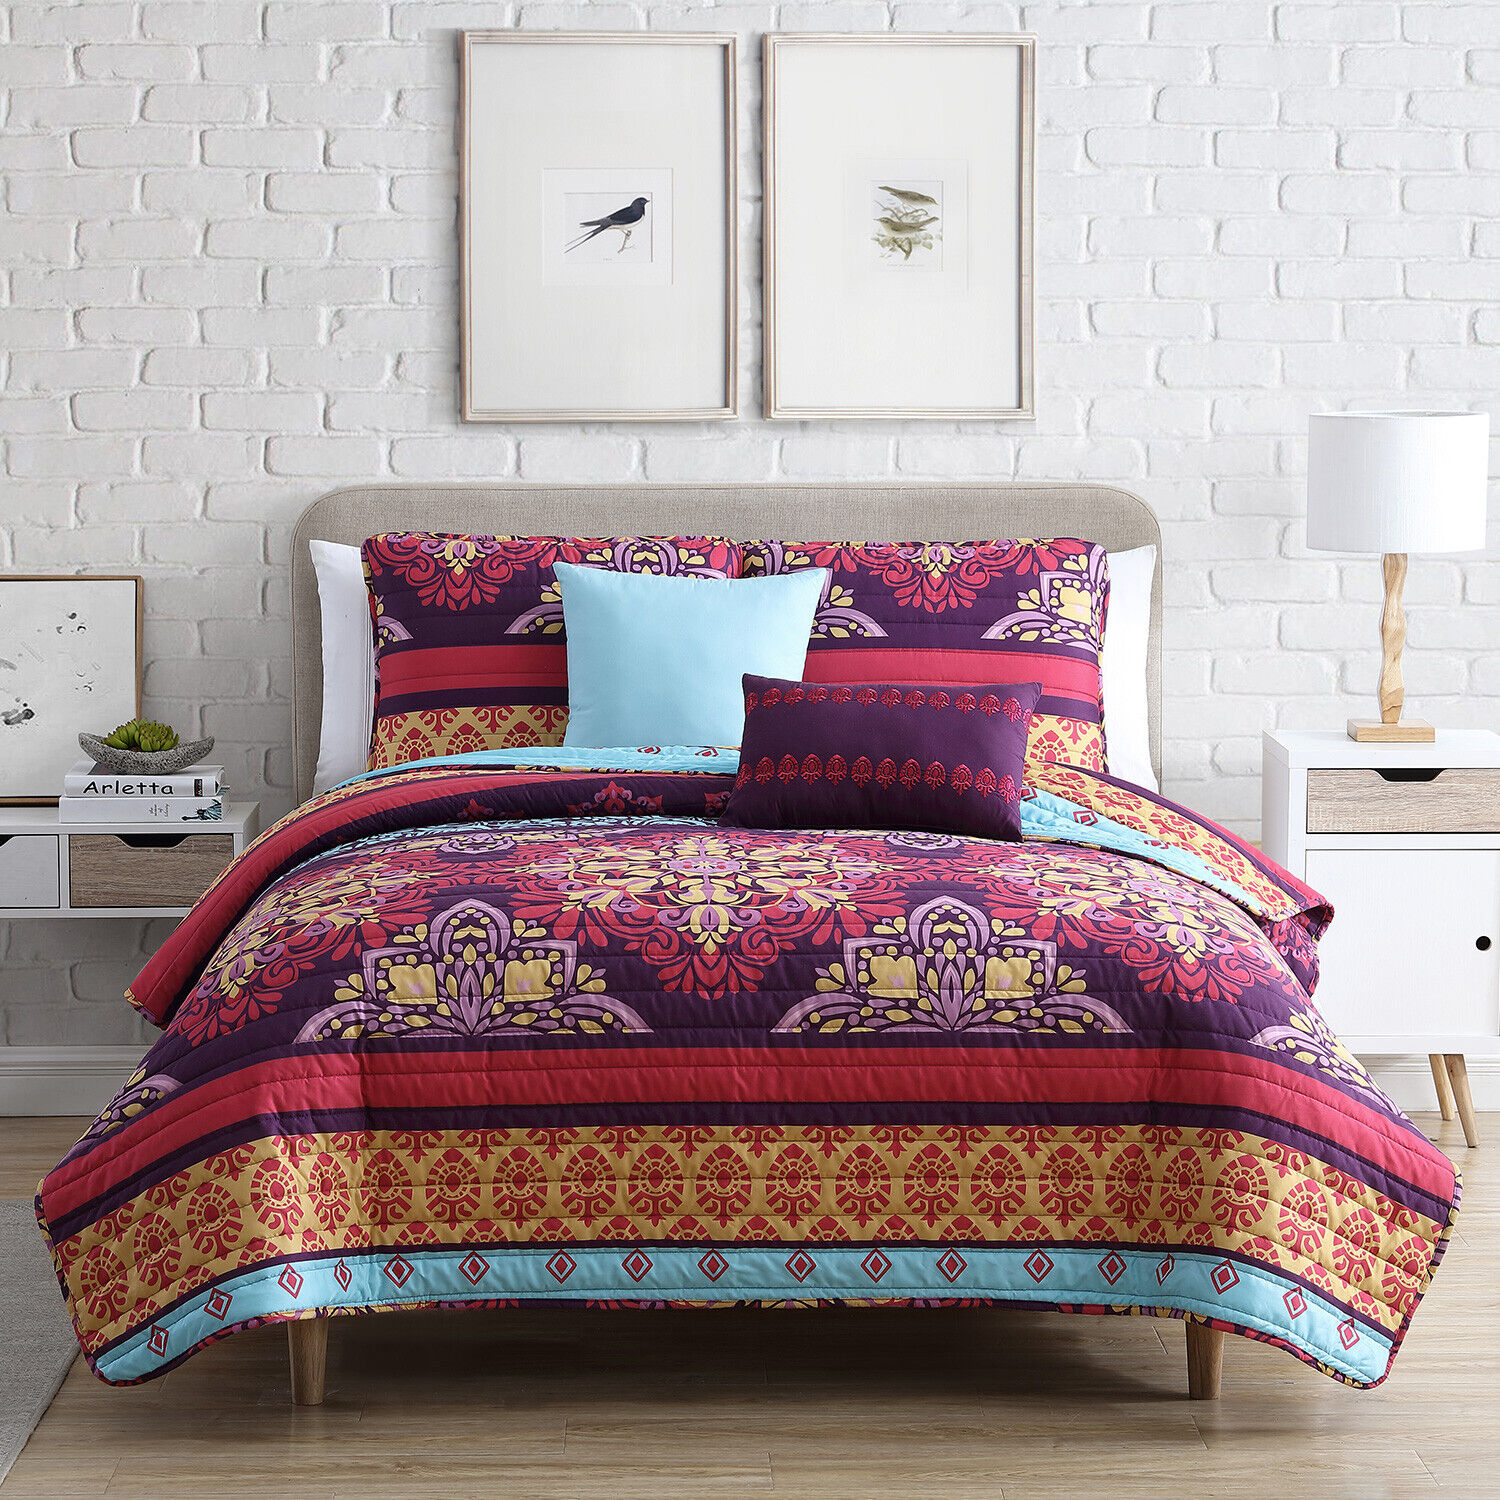 Twin XL or Full XL Medallion Quilt Bedding Set with Sham and Pillows, Red Purple Bedding